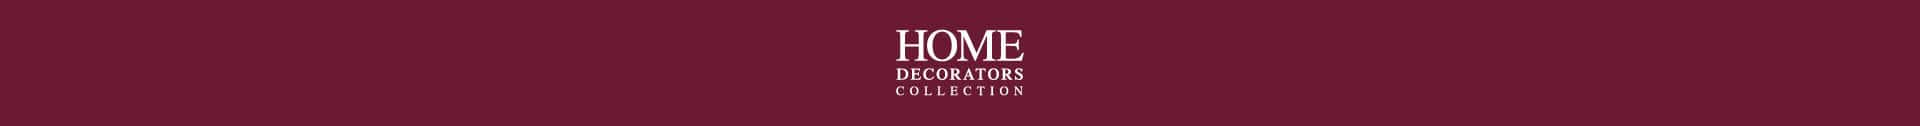 Home Decorators Collection Brand Banner